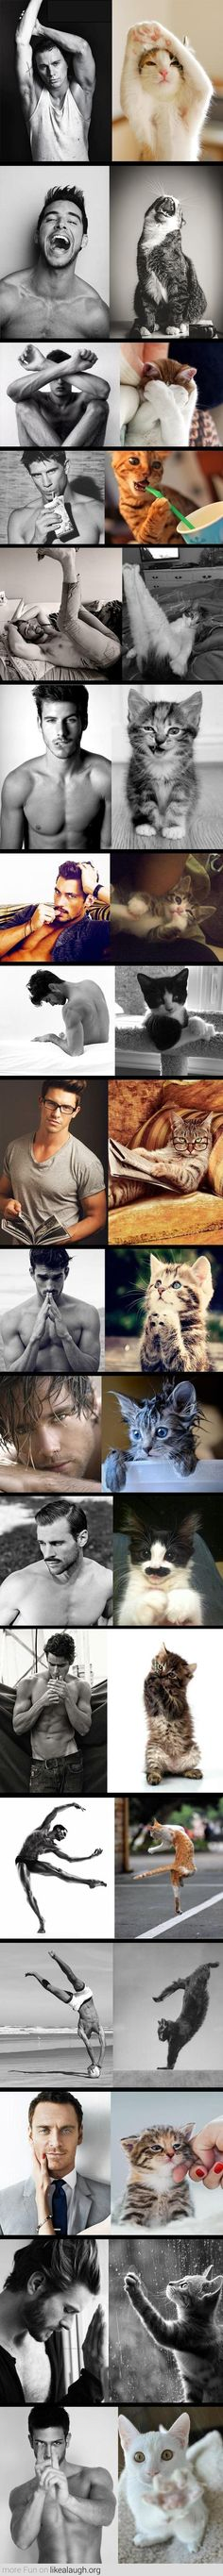 Models vs Cats  CATS WIN EVERY TIME